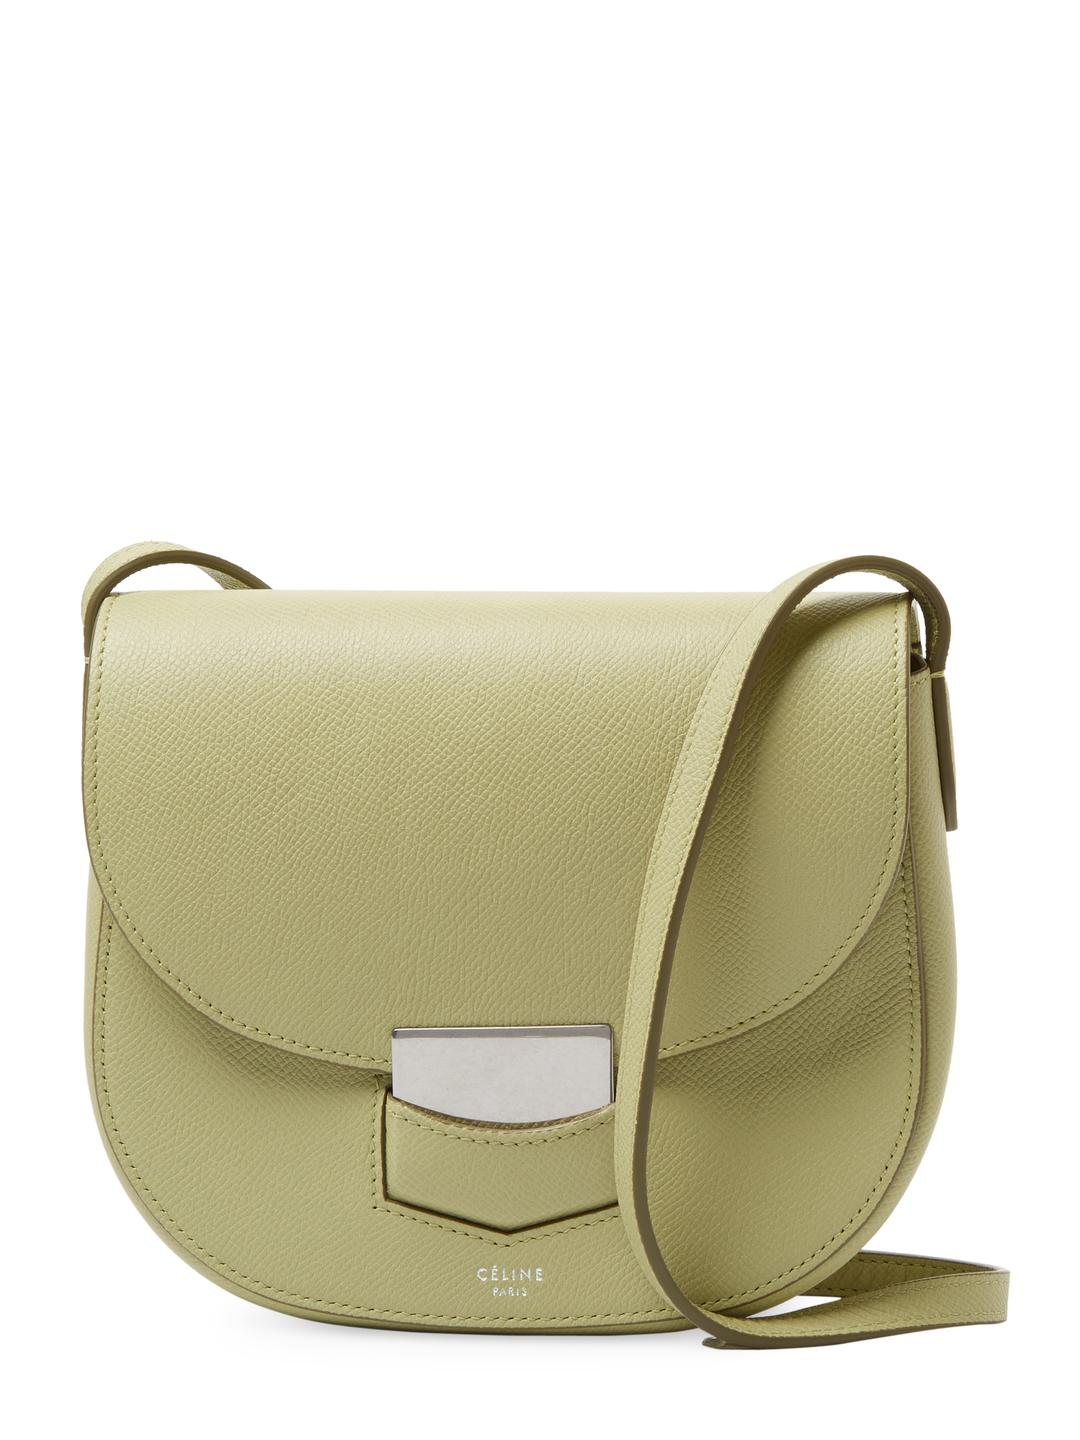 584057b28c Céline Trotteur Small Leather Shoulder Bag in Green - Lyst